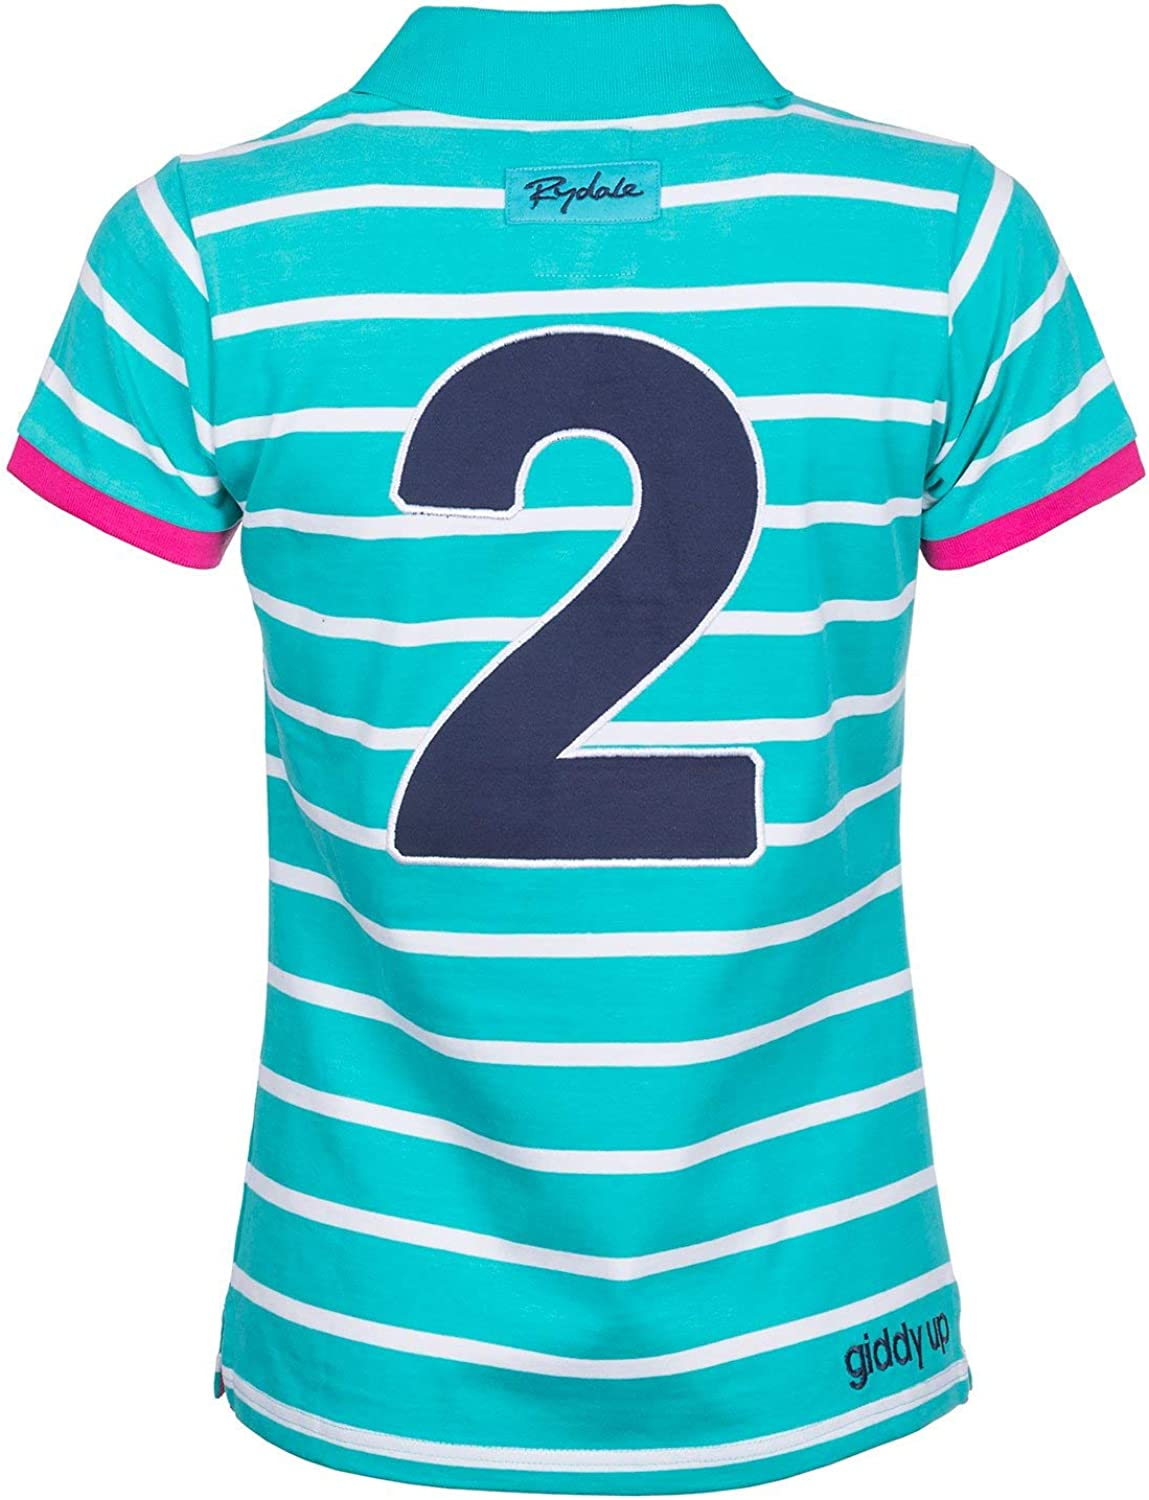 Rydale Ladies Haxby Hooped Polo Shirt